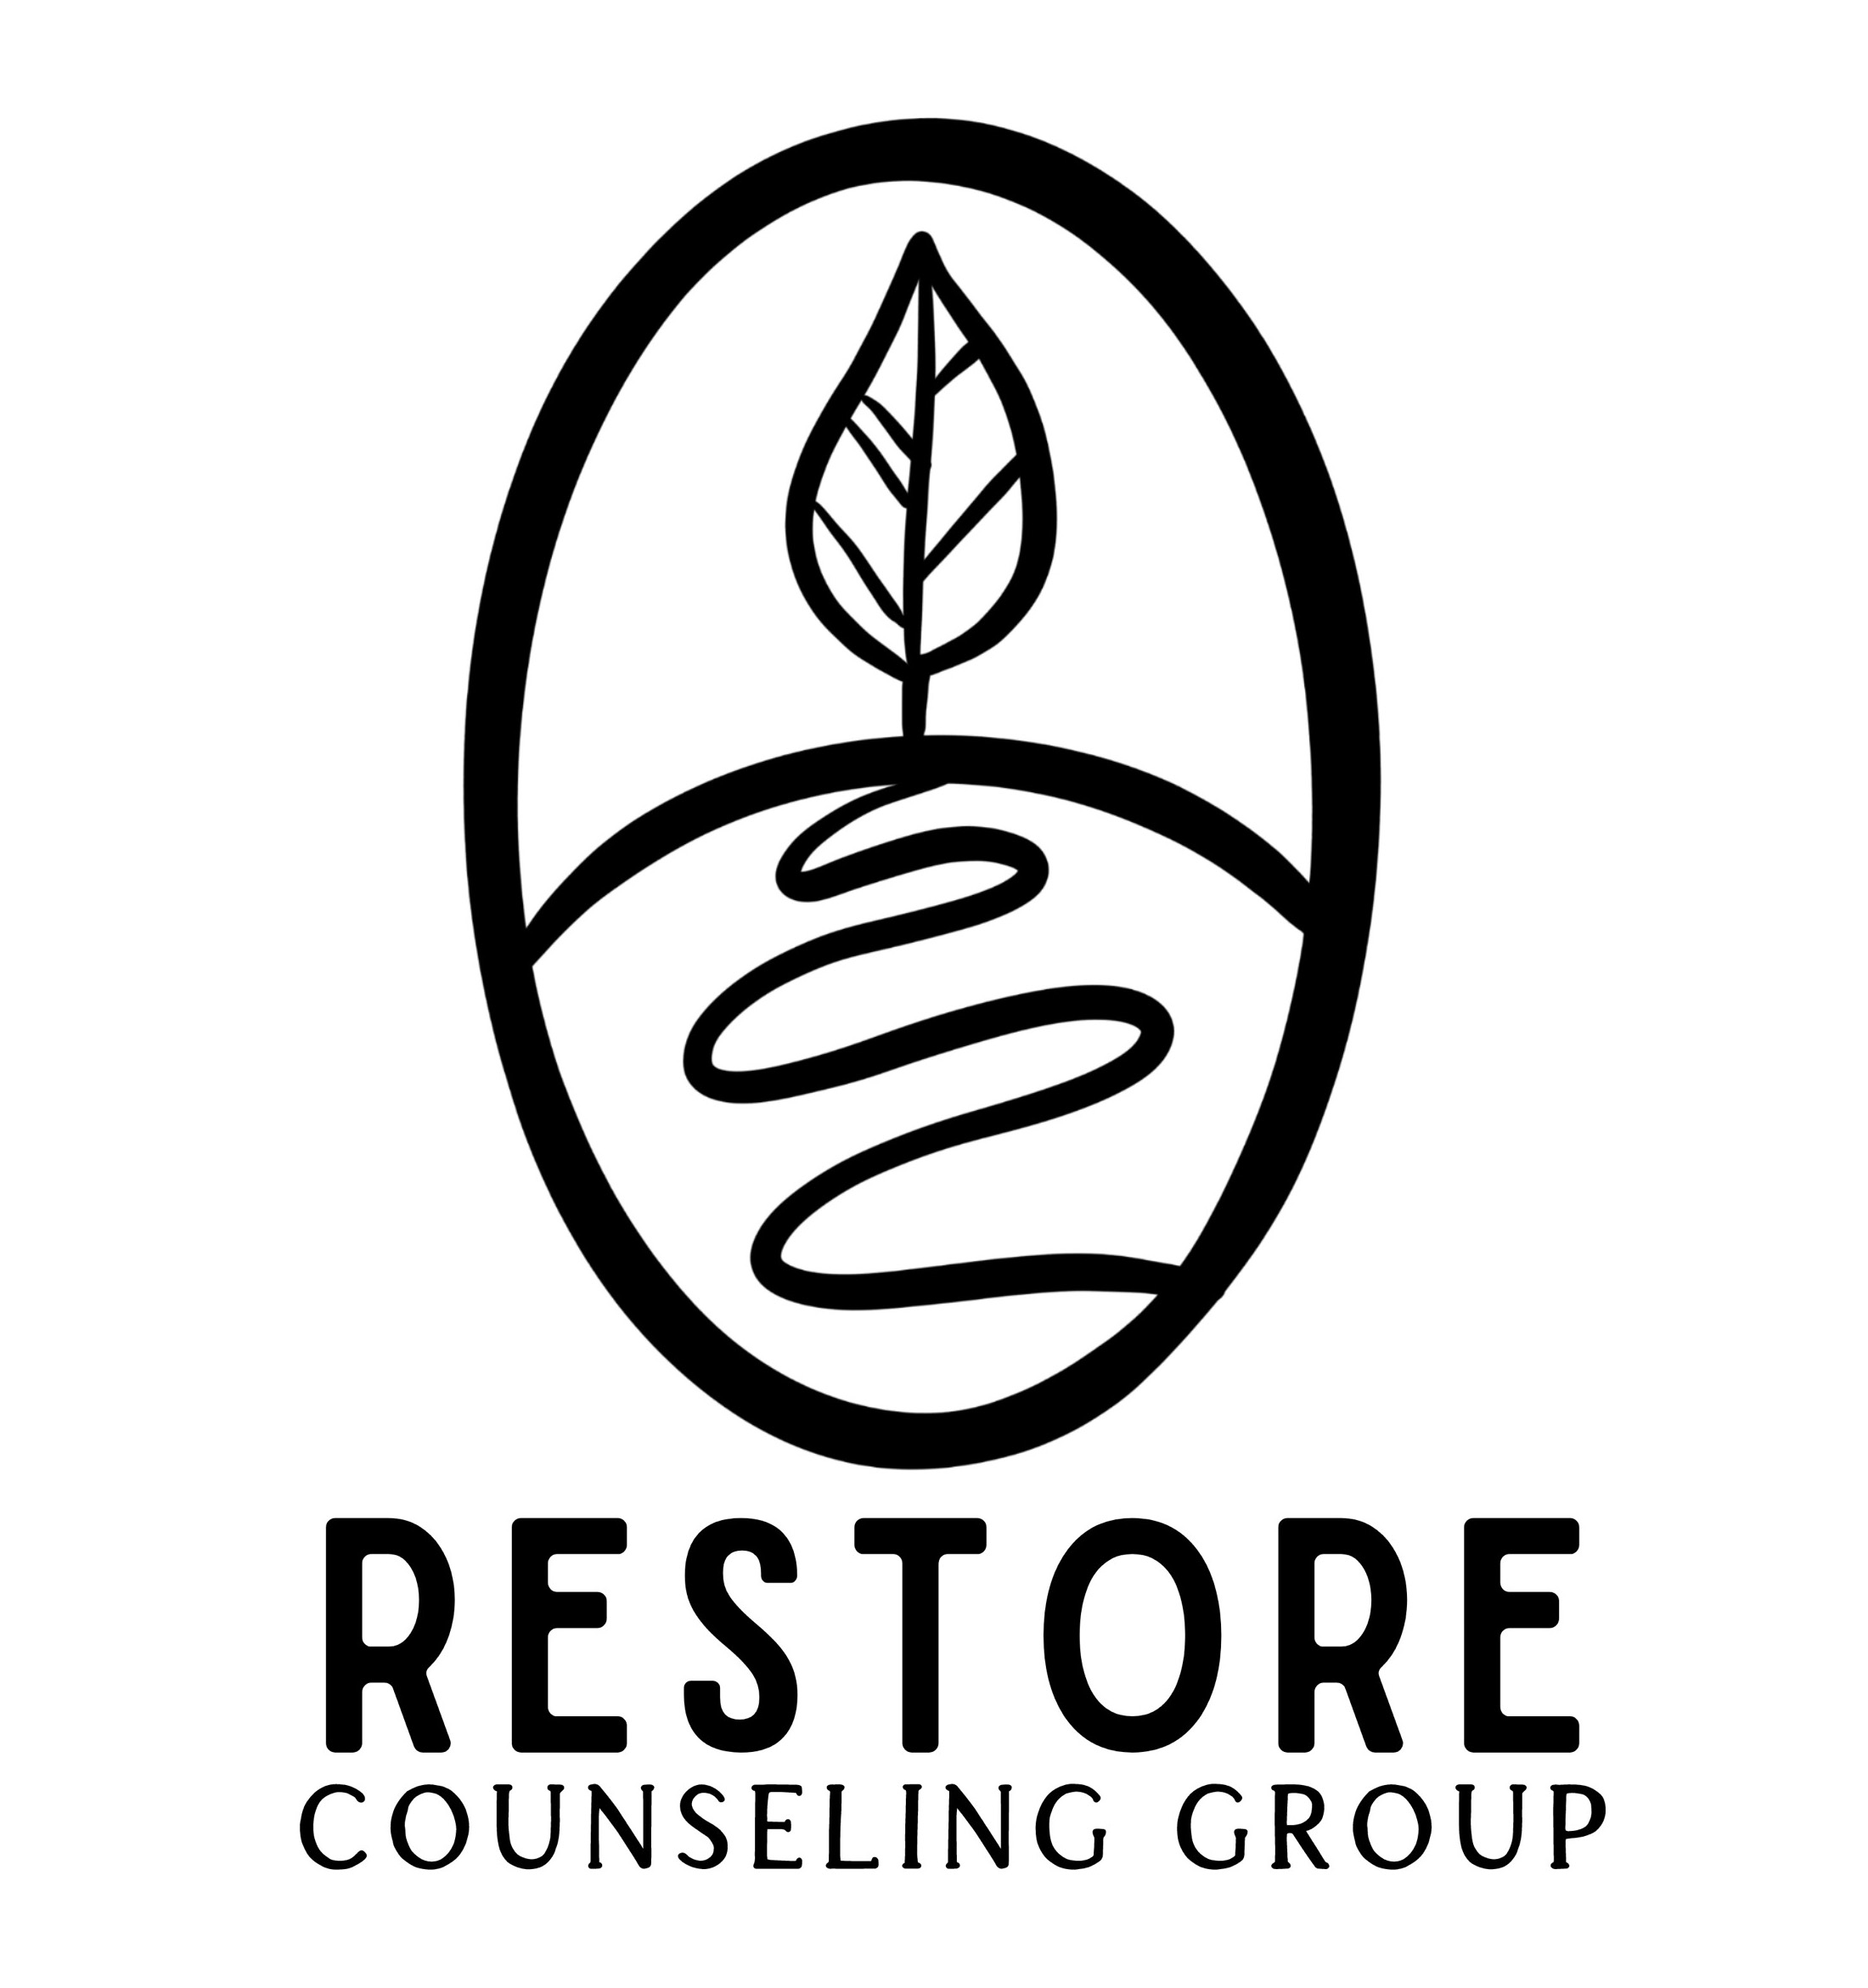 Restore Counseling Group